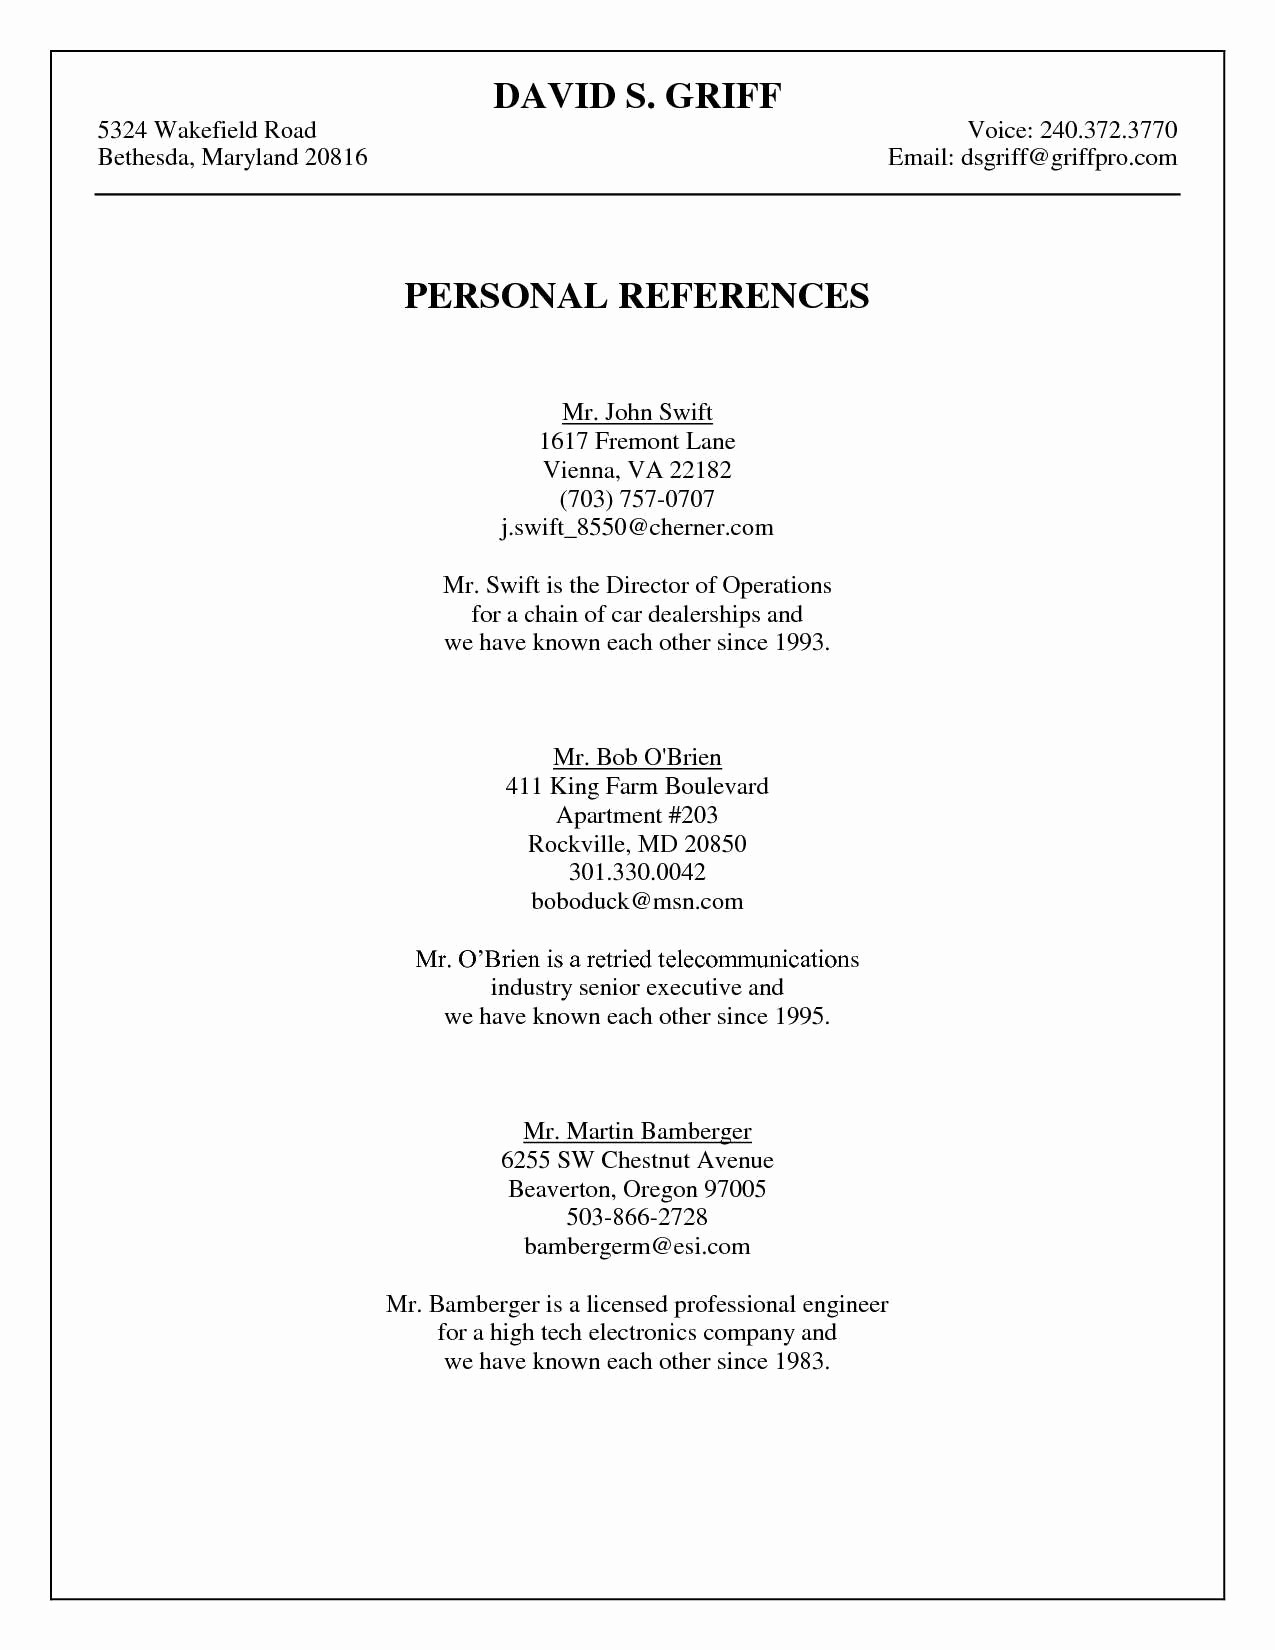 Reference Sheet for Resume Template New Professional References Page Template Free Reference